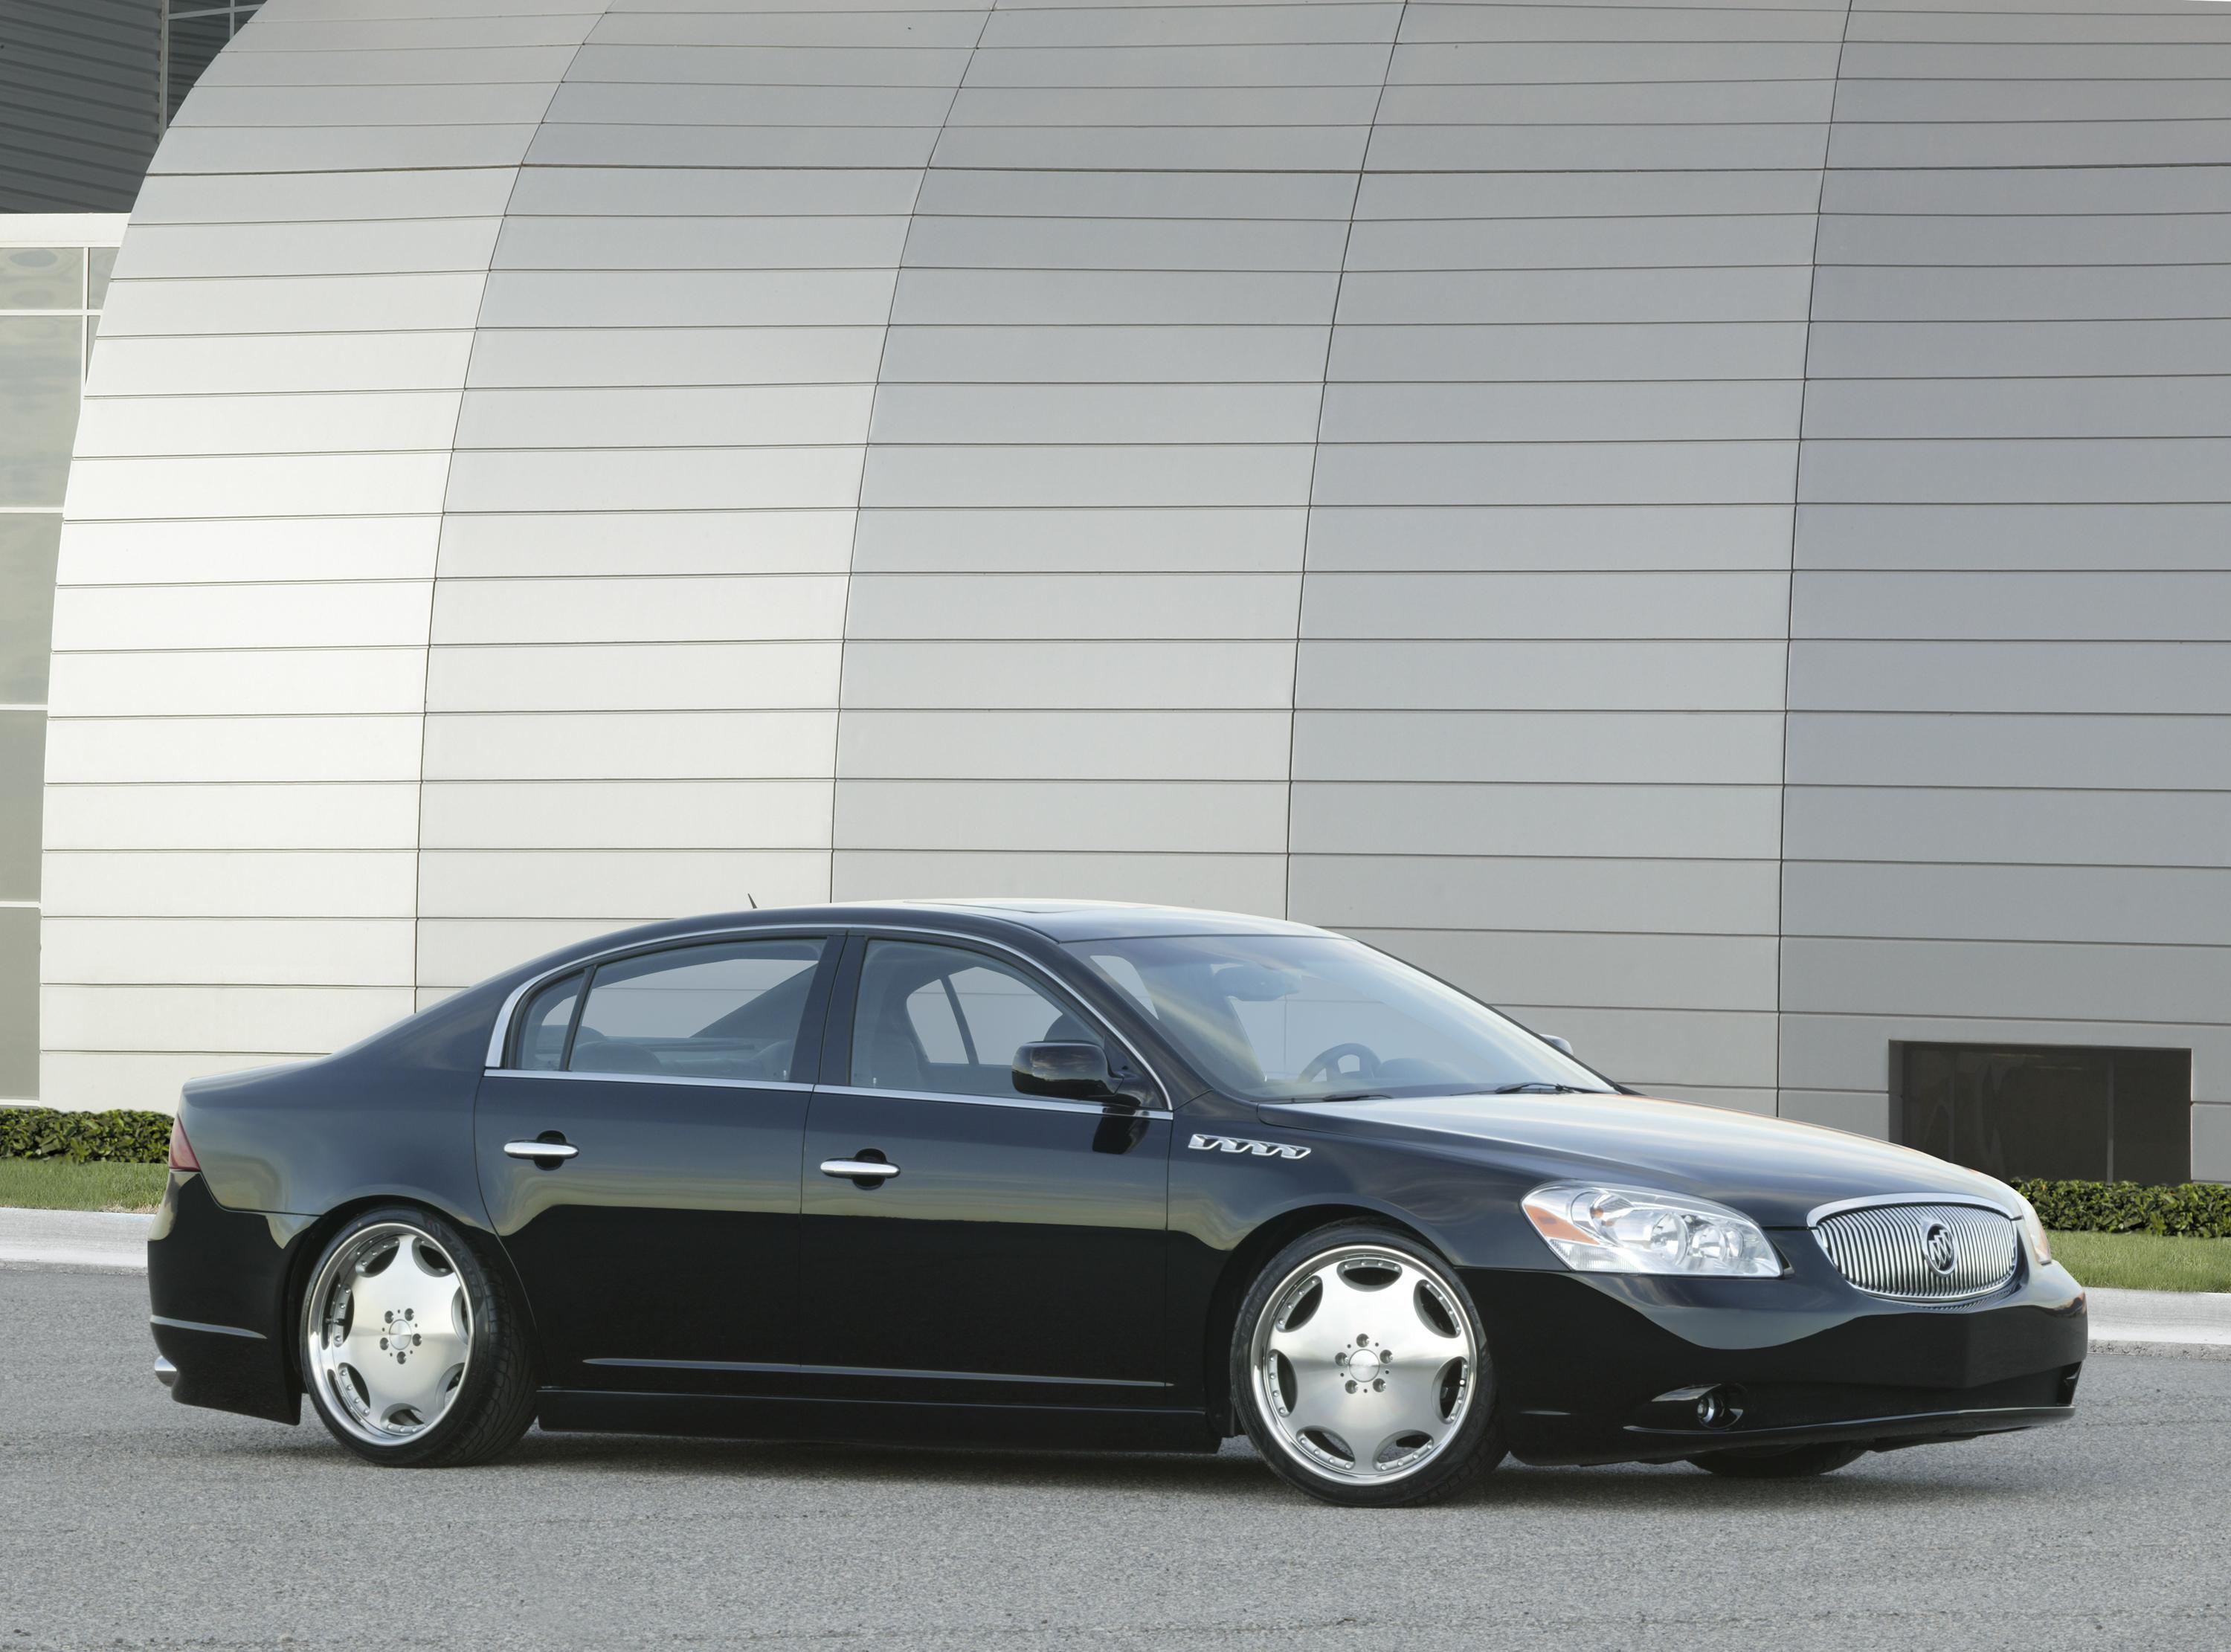 2007 Buick Lucerne By RIDES Magazine | Top Speed